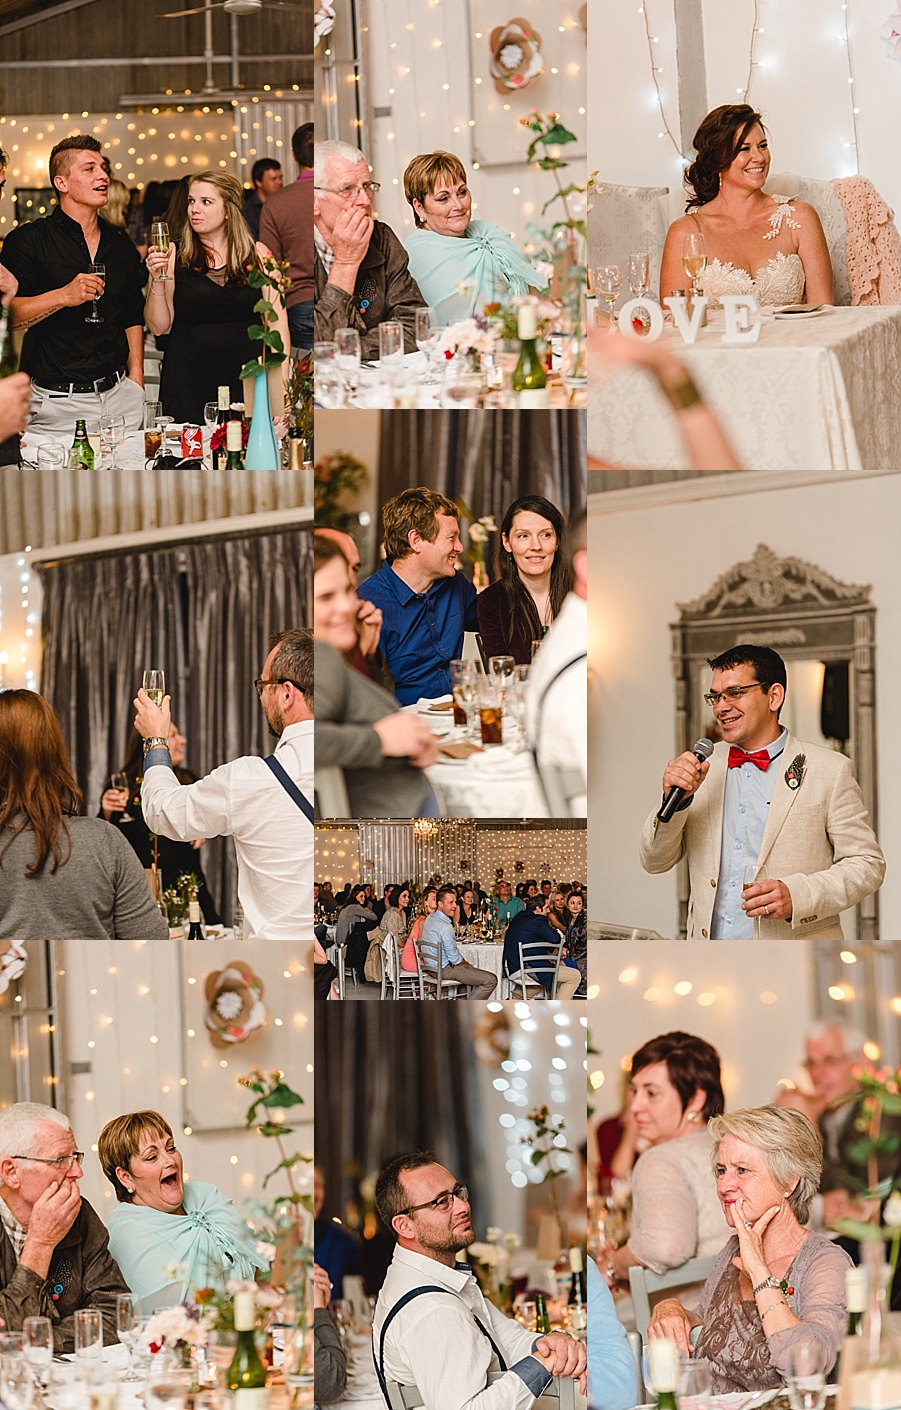 Darren Bester - Cape Town Wedding Photographer - Rondekuil - Basson & Monique_0066.jpg